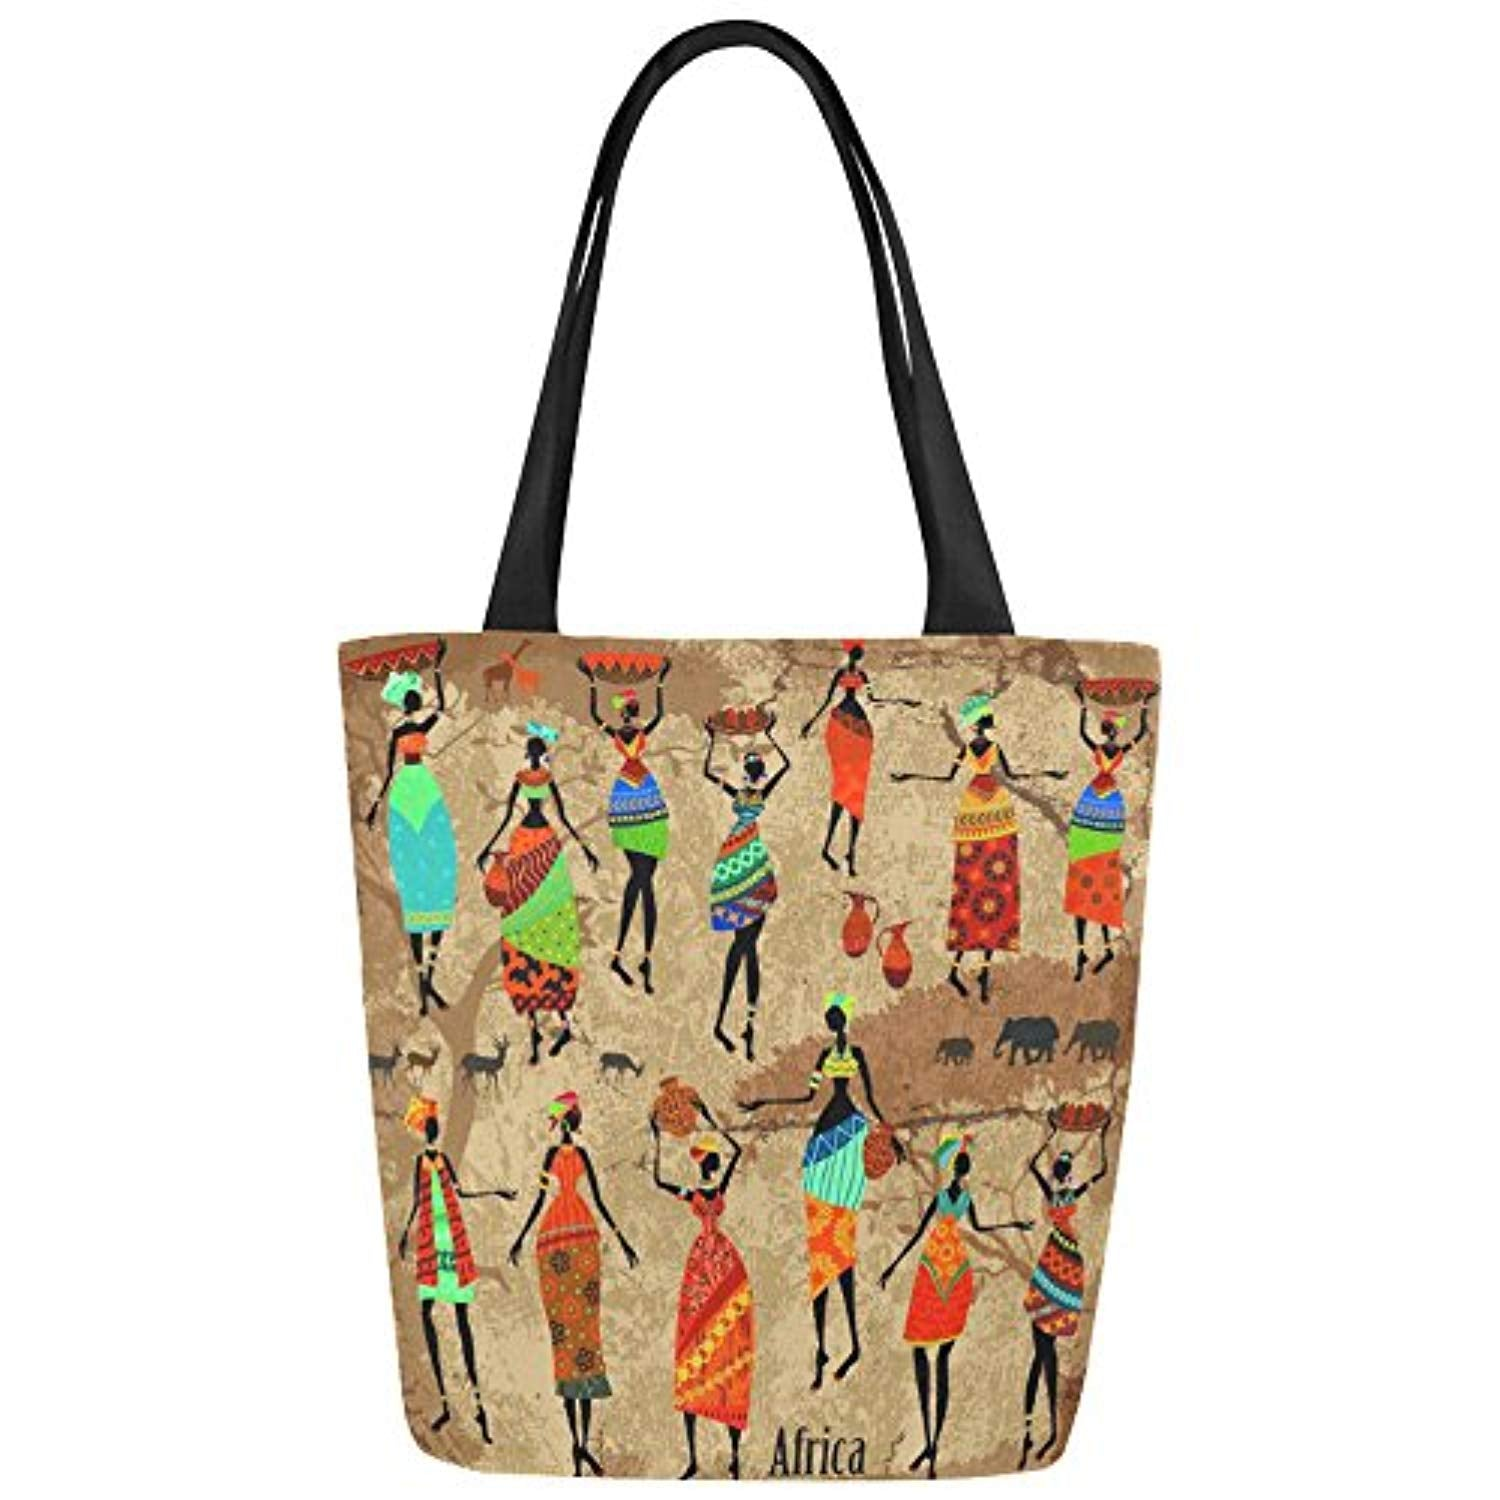 Funny Design Canvas Tote Bag Handbag Purse for Women